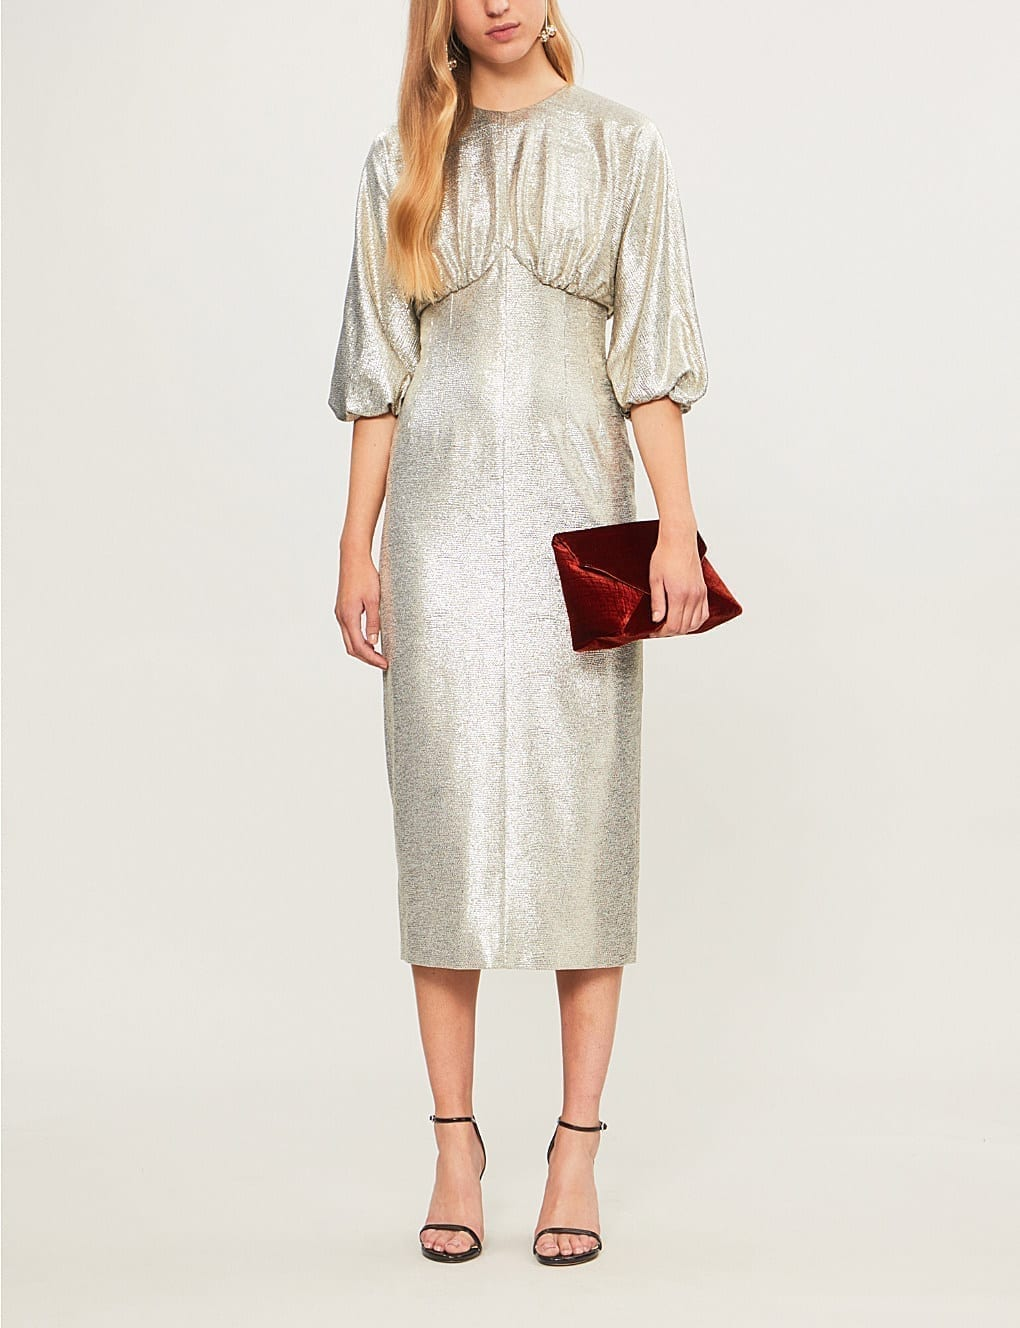 EMILIA WICKSTEAD Elissa Puff-Sleeve Metallic-Knit Silver Dress